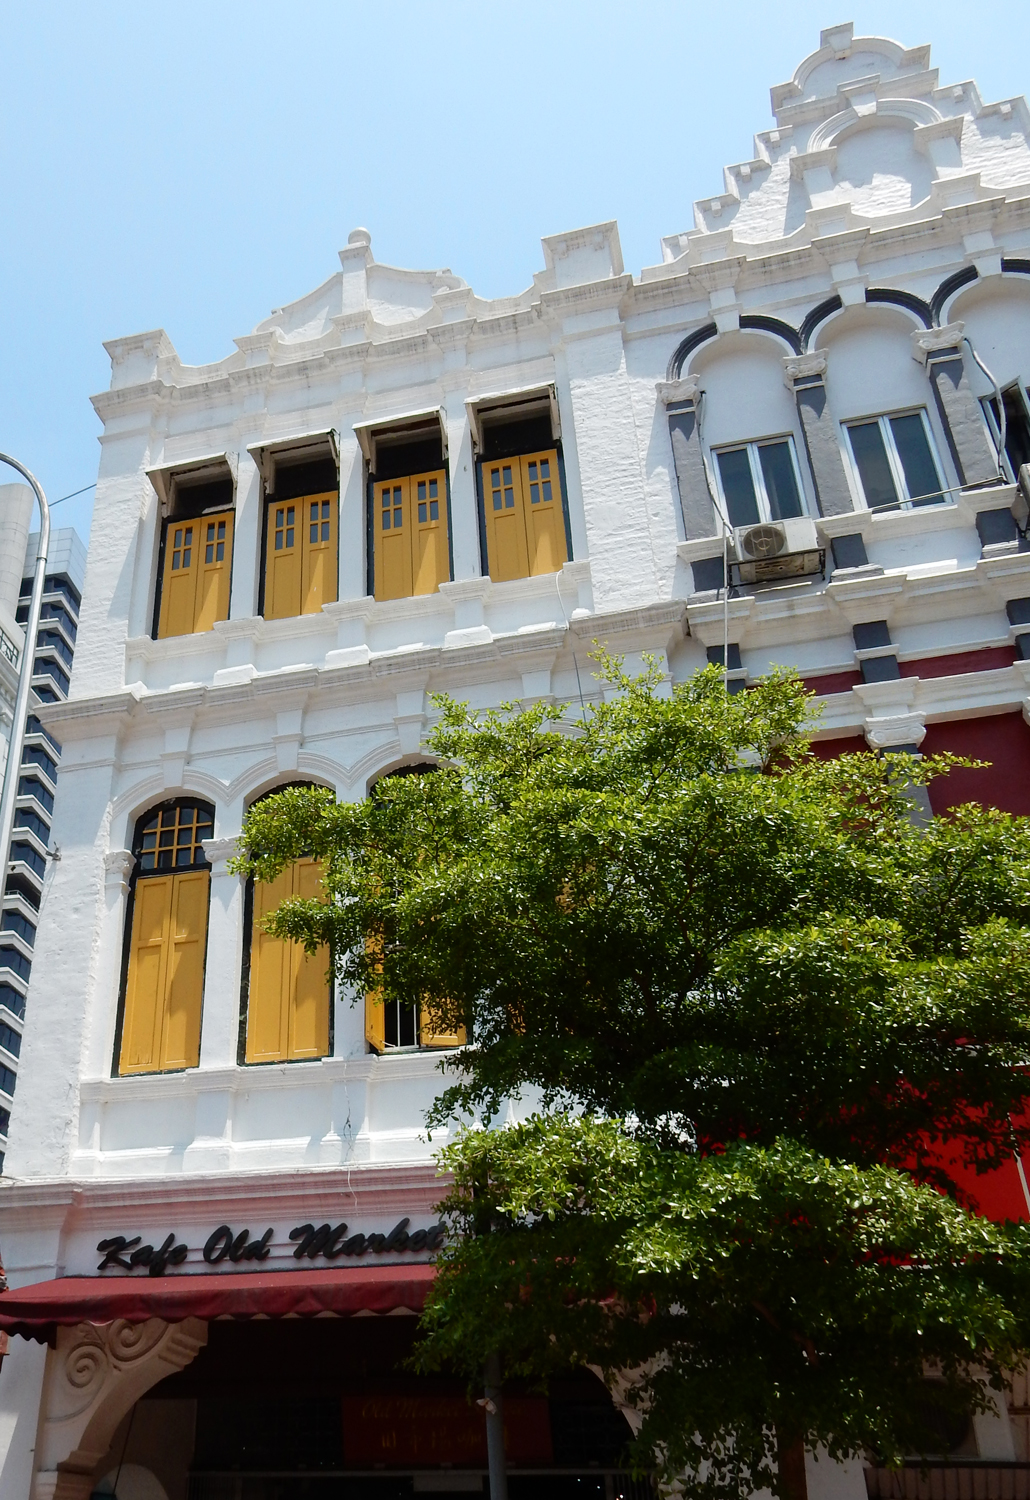 Central market Kuala Lumpur walking tour lonely planet wandel route stad maleisie